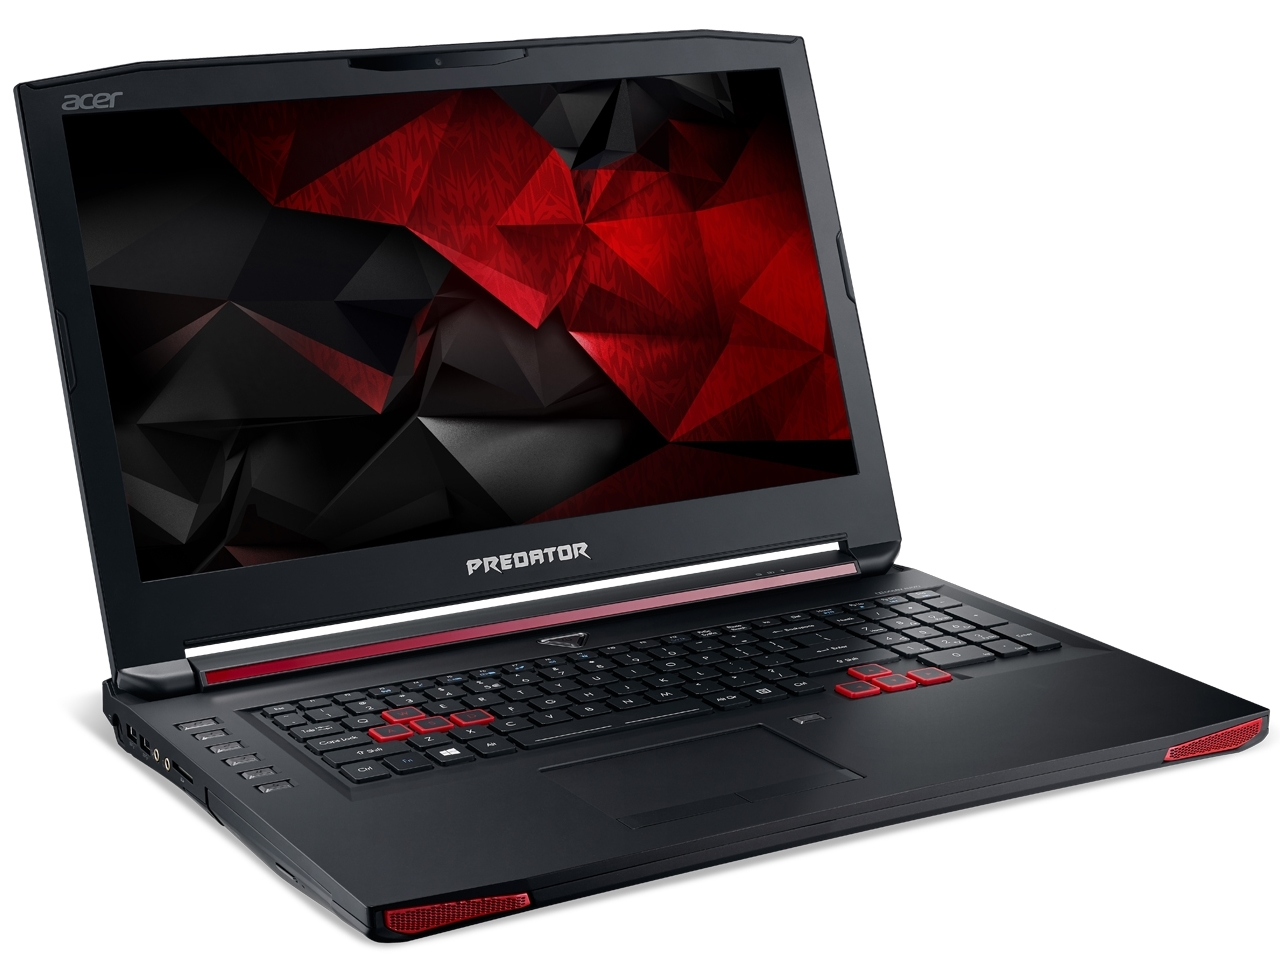 acer predator laptop gaming